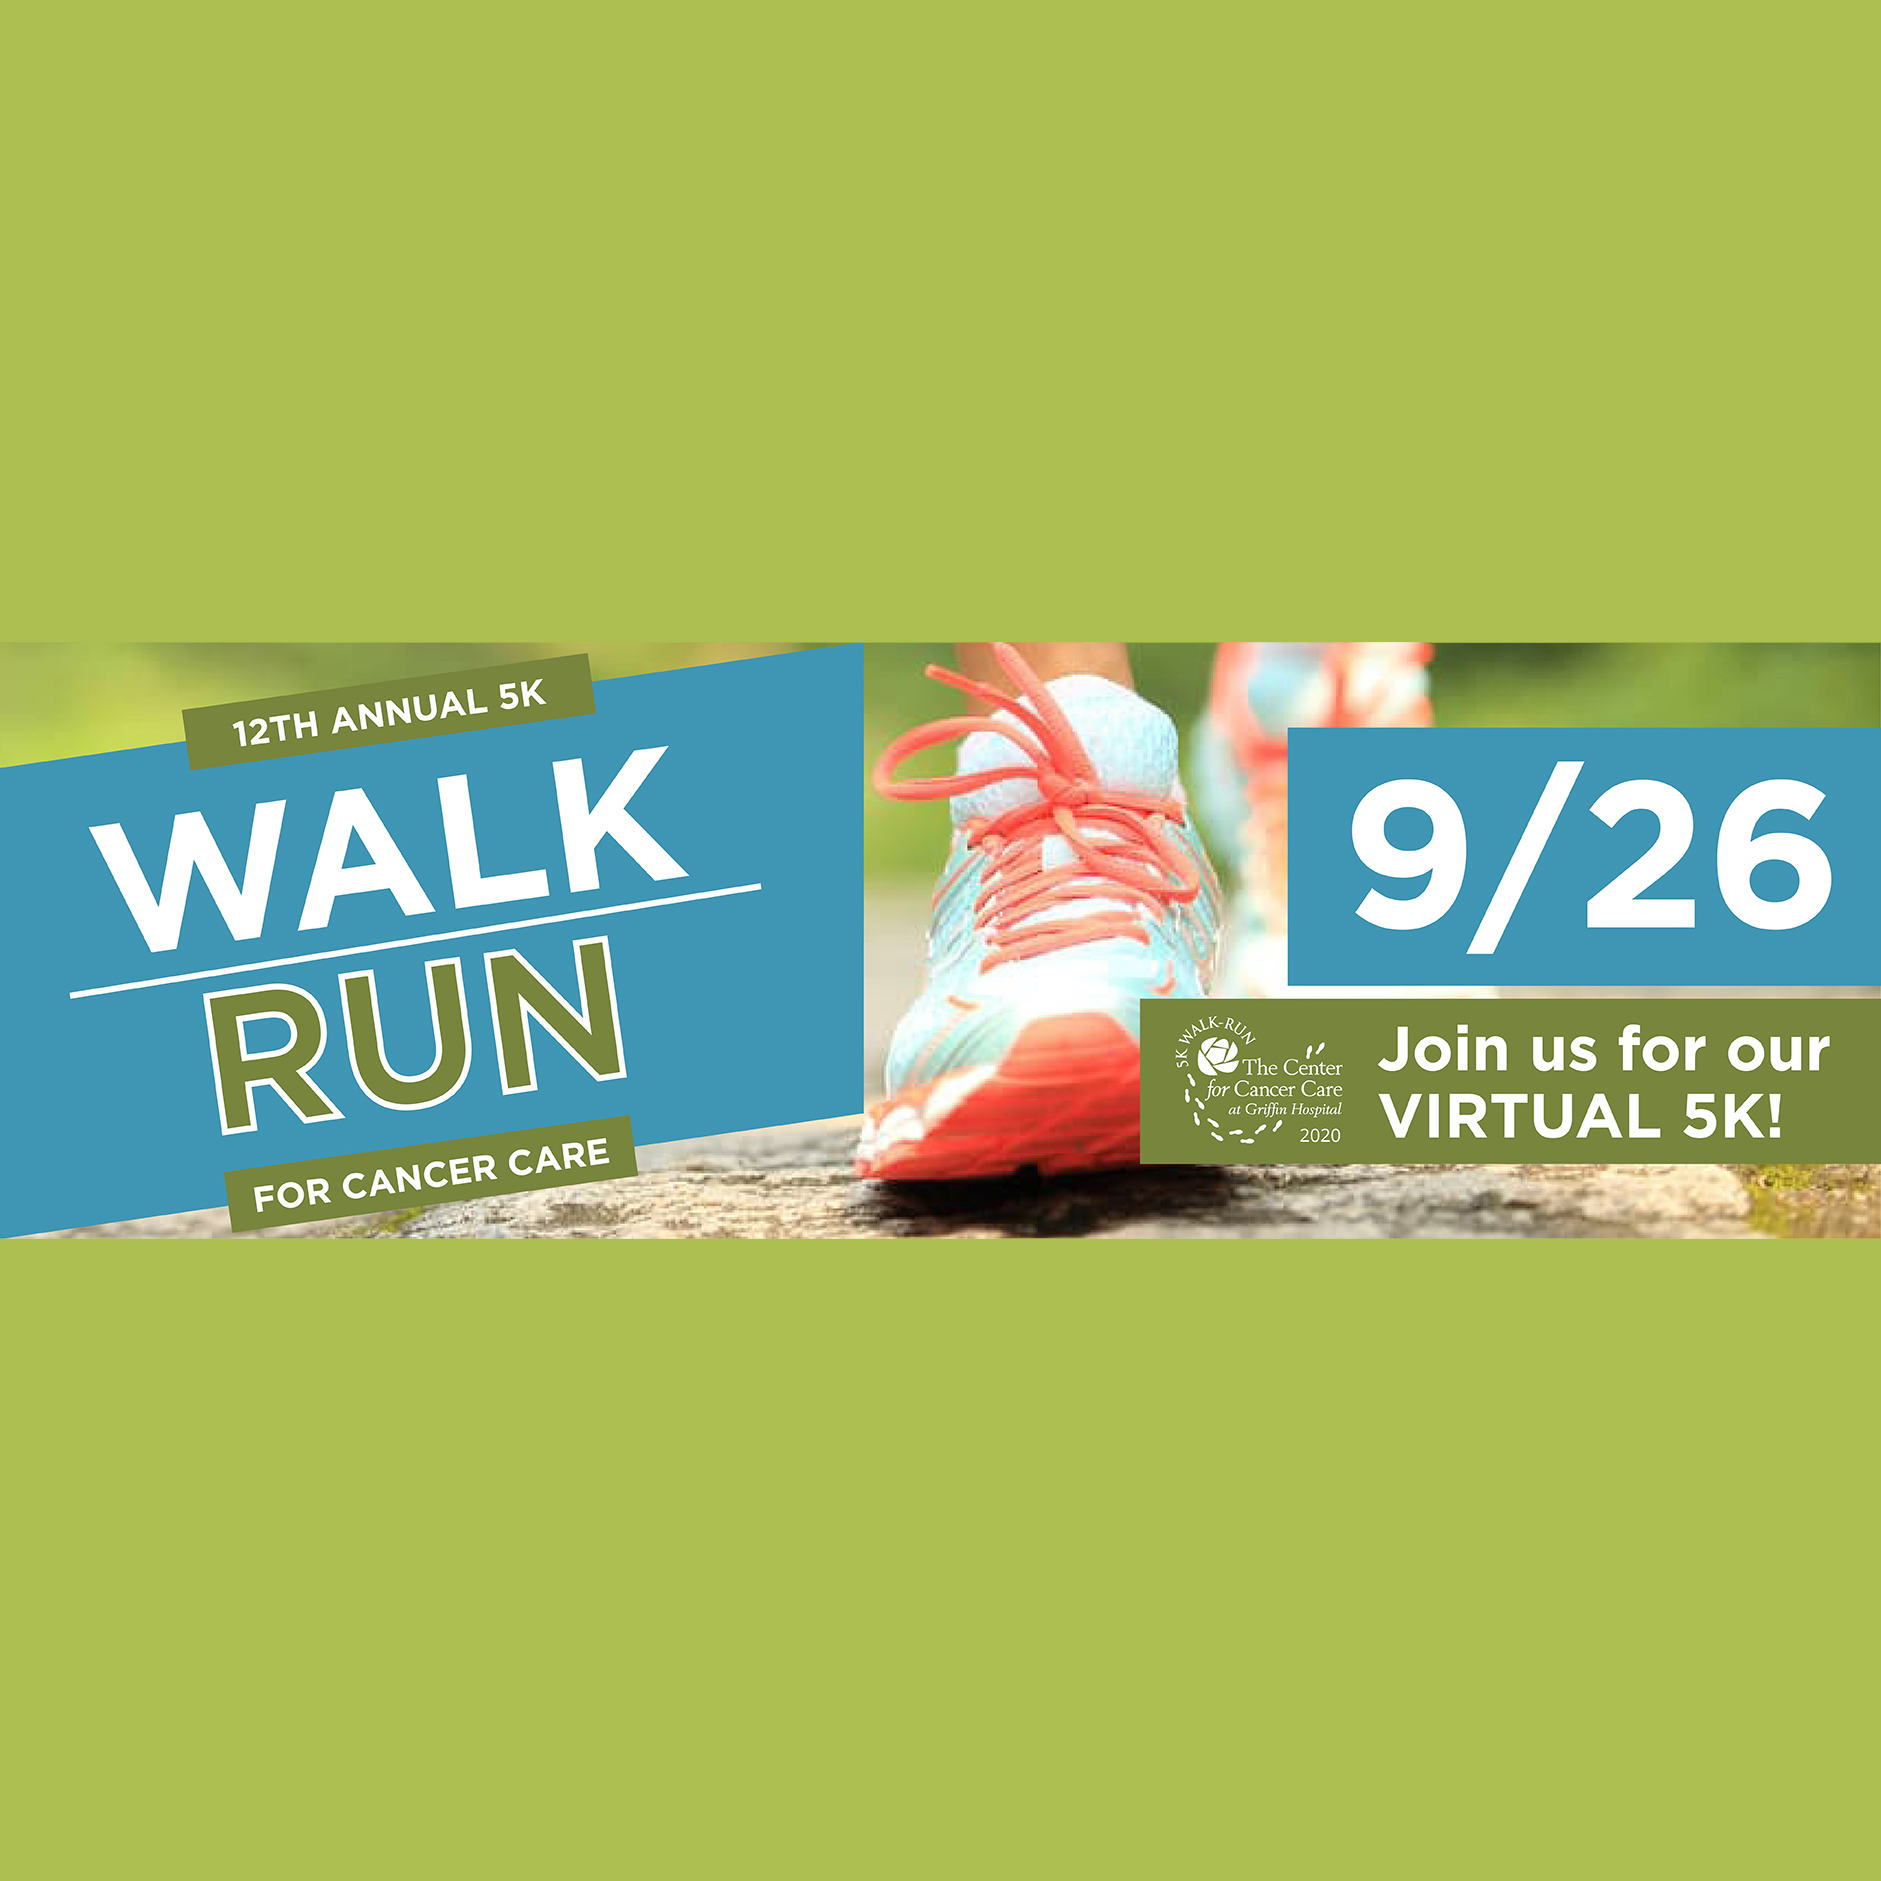 5K Walk/Run to benefit the Center for Cancer Care at Griffin Hospital